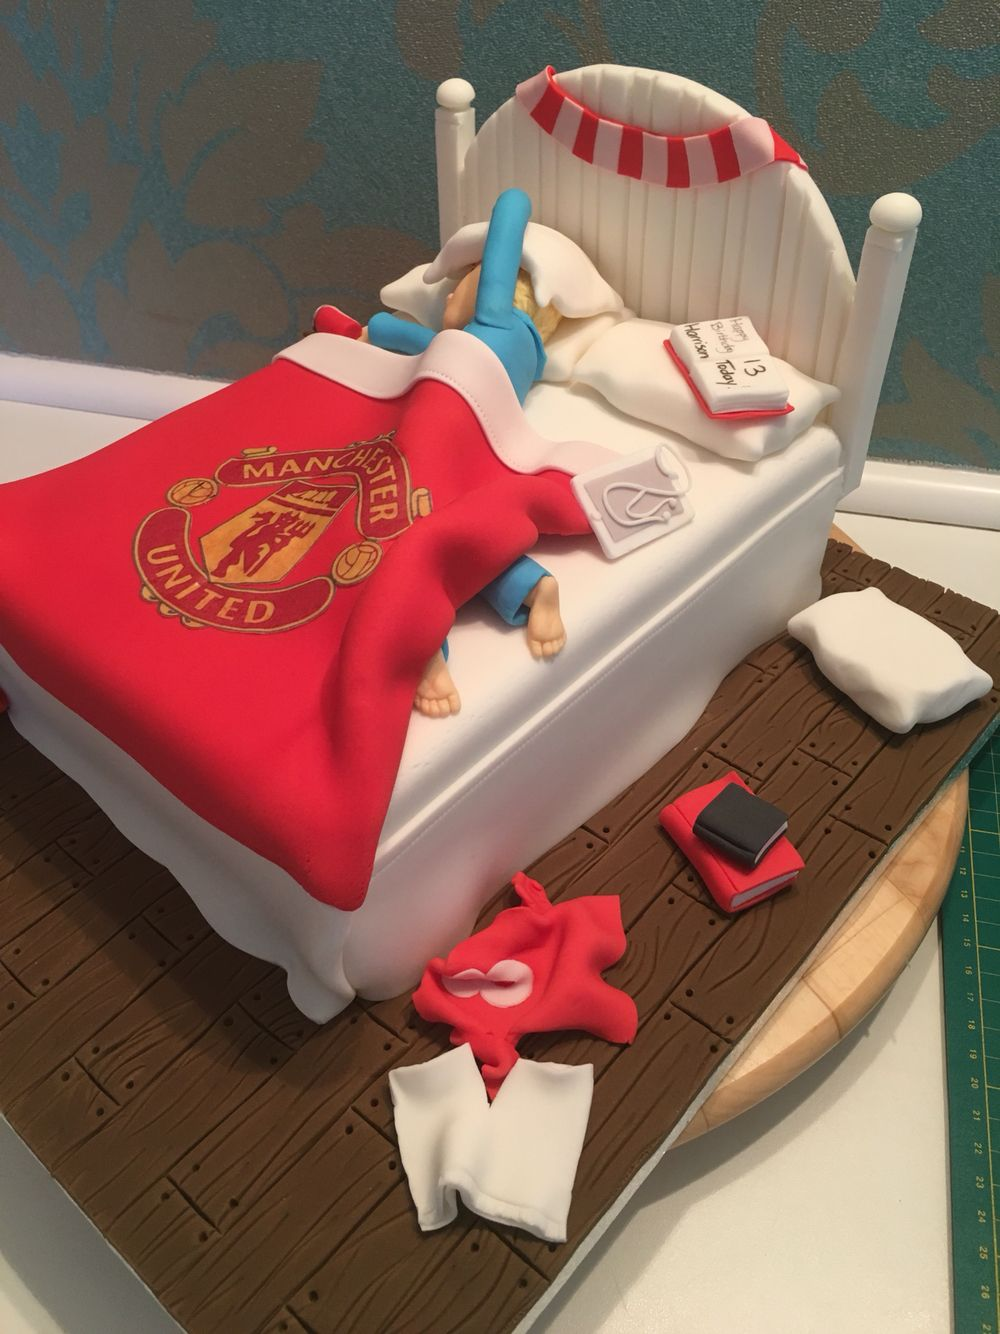 Teenagers Bed Cake Amazing Cakes In 2019 Bed Cake